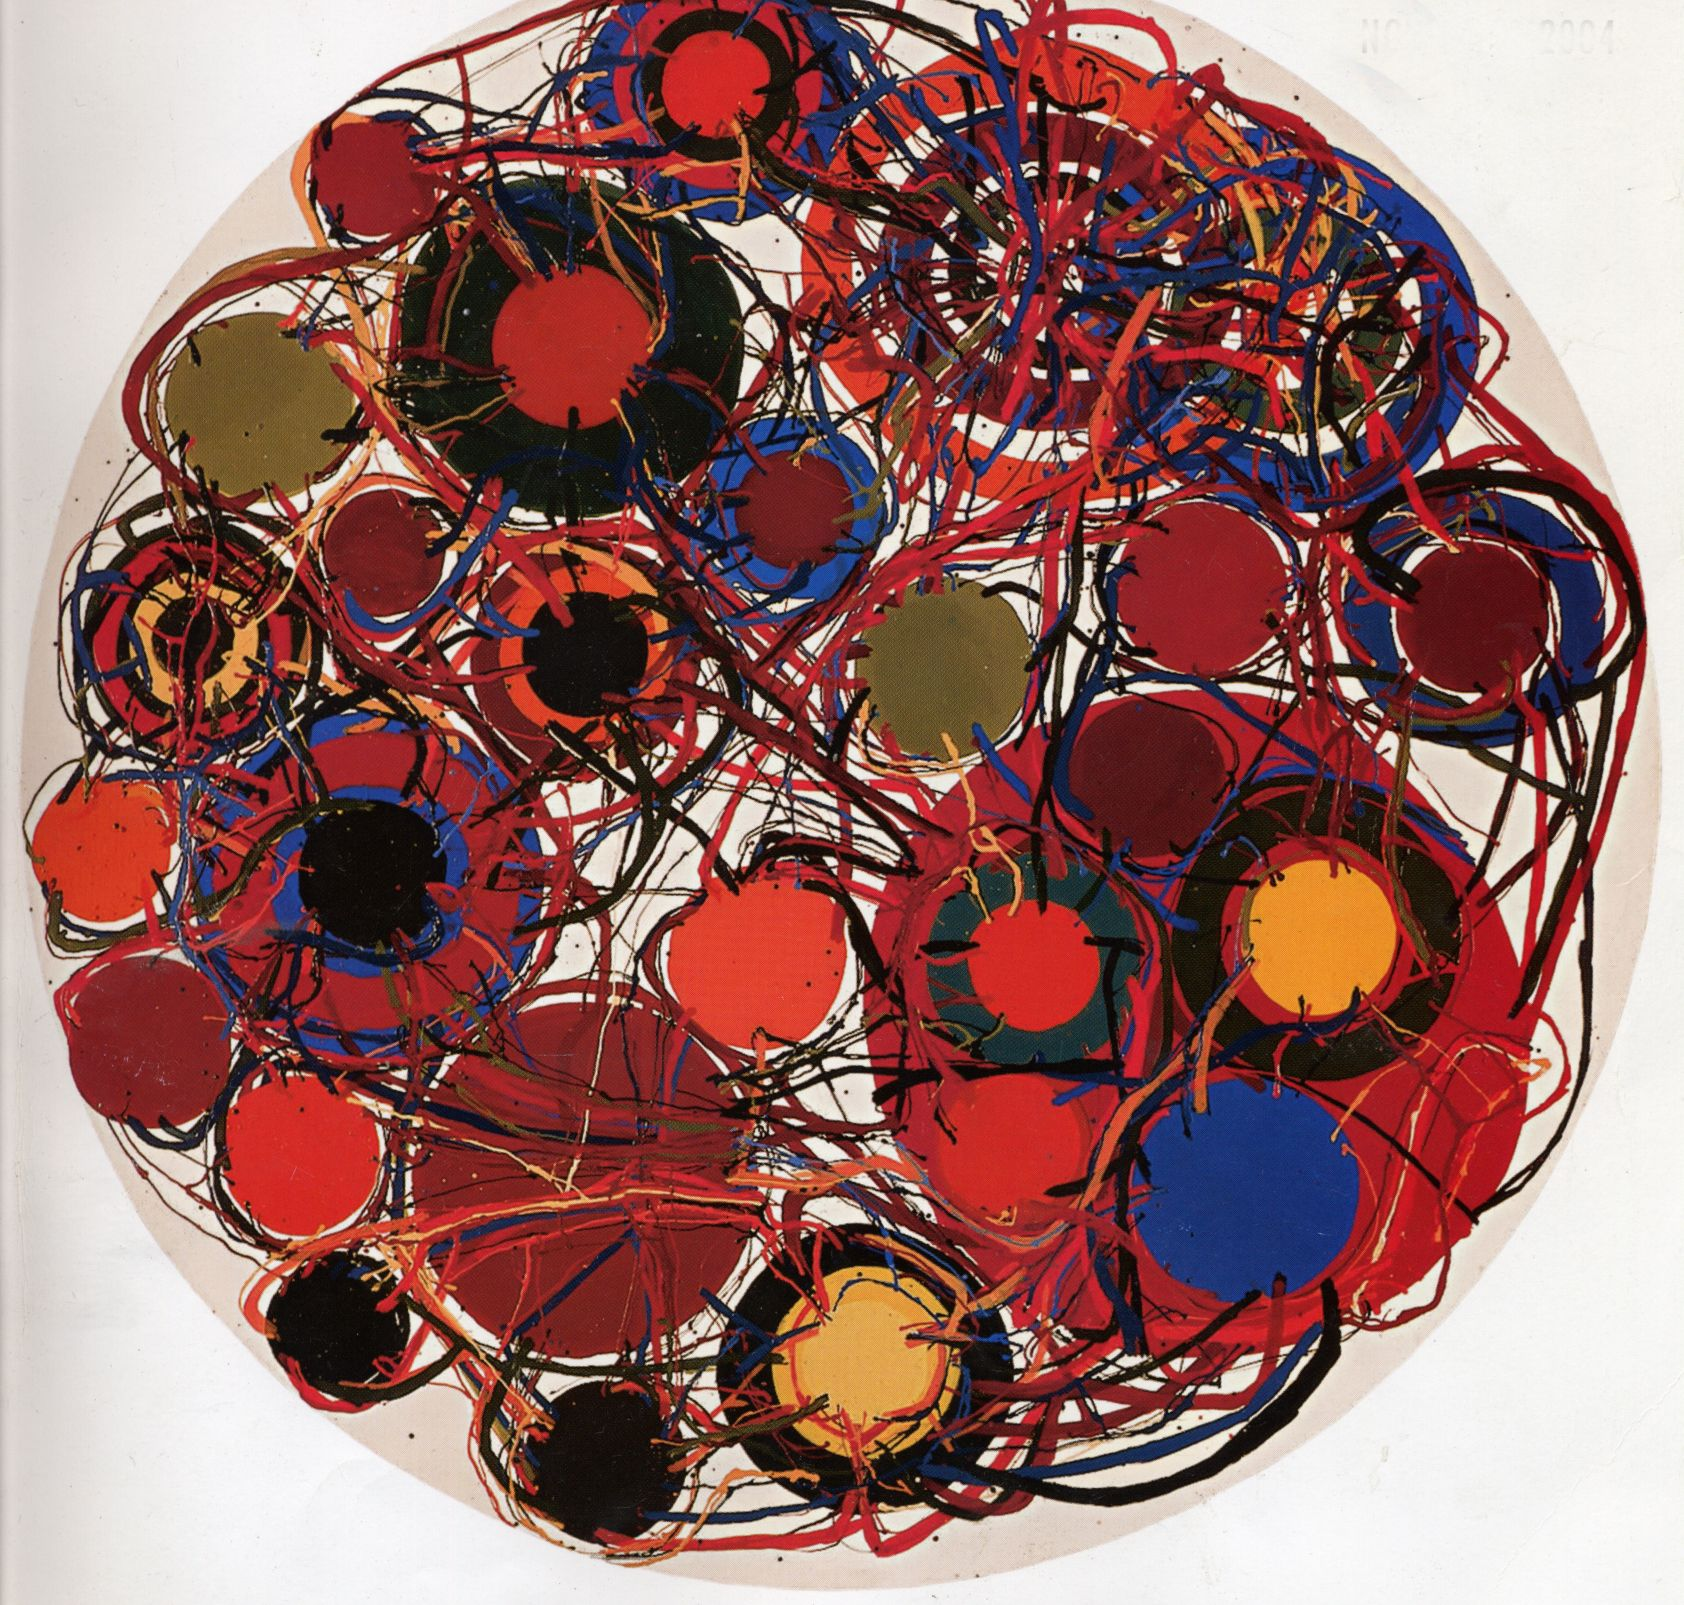 Atsuko Tanaka Diagrams Into The Diagram Art Event Classical Art Paintings Abstract Expressionist Painting